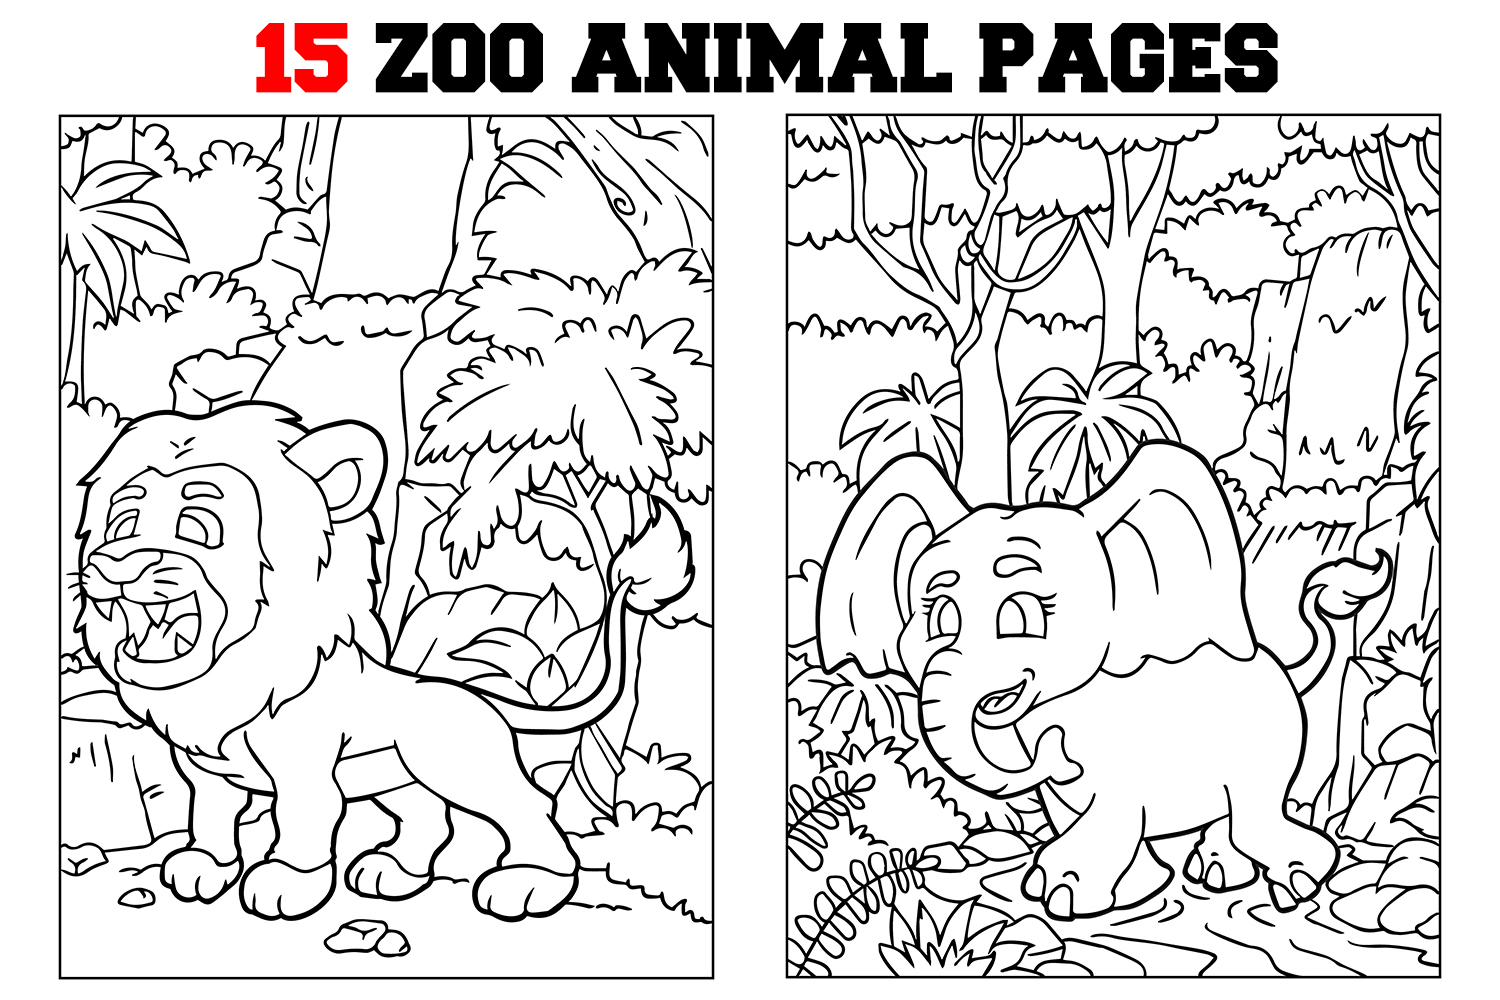 - Coloring Pages For Kids - 15 Zoo Animals Pages (300986